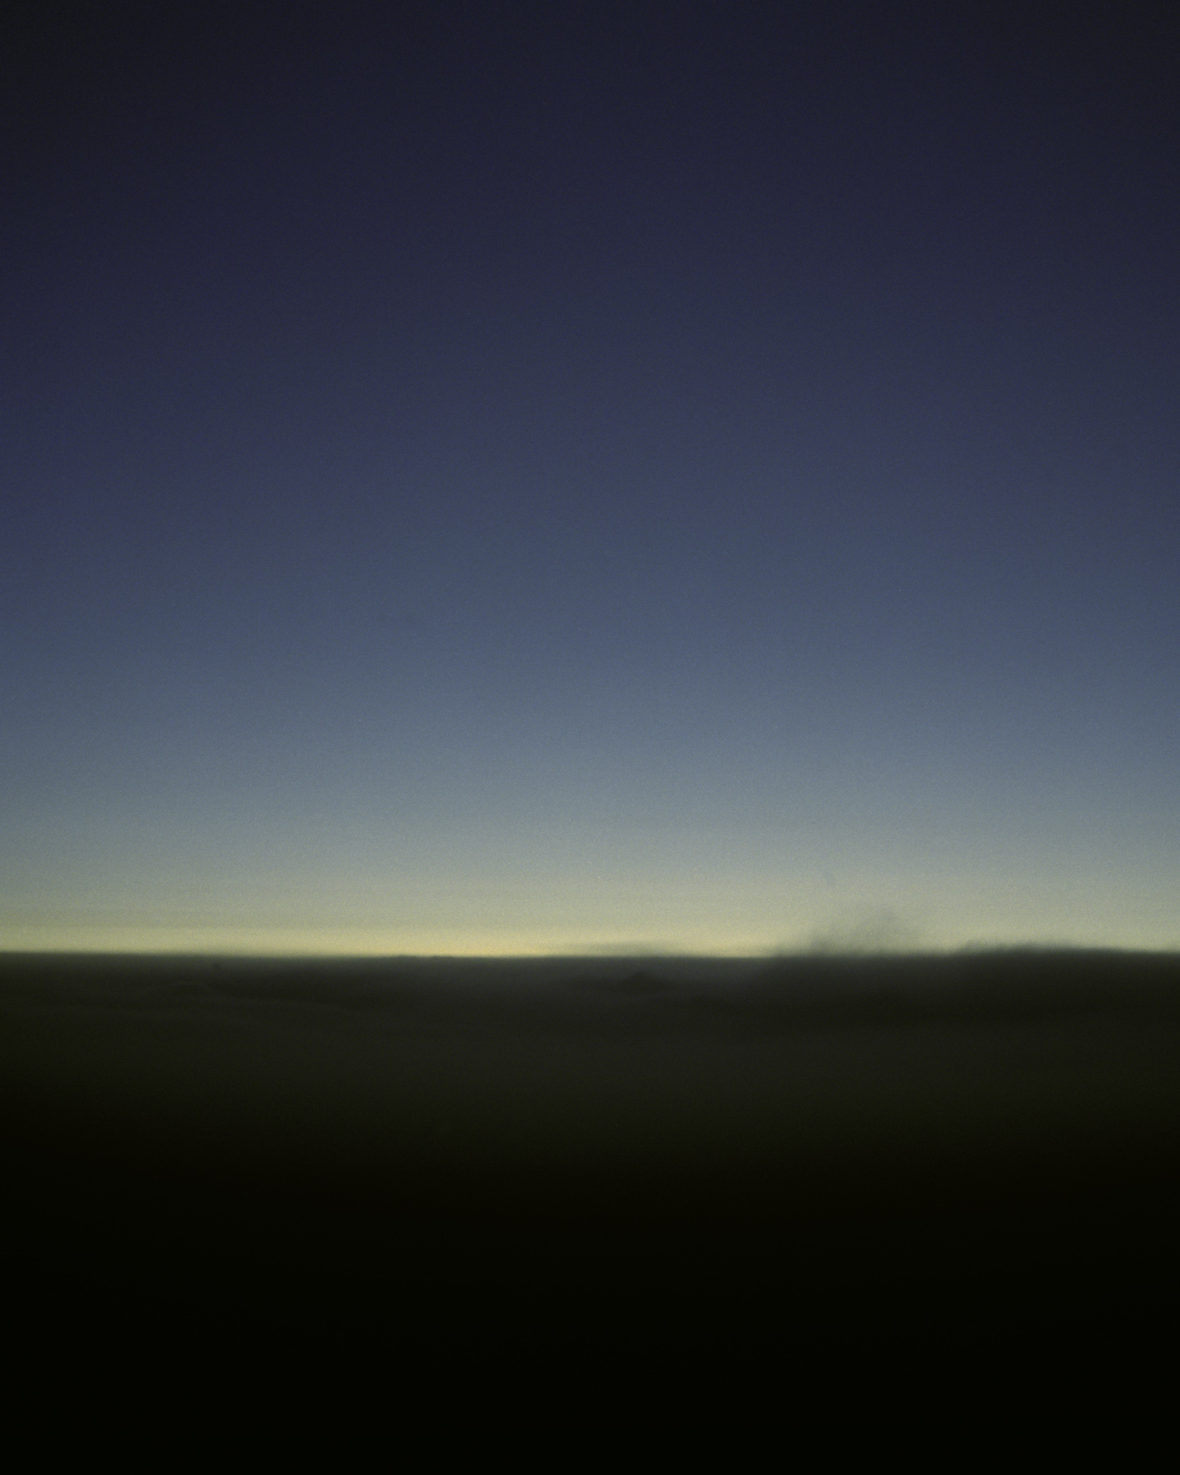 Horizon, from the series Book of Hours